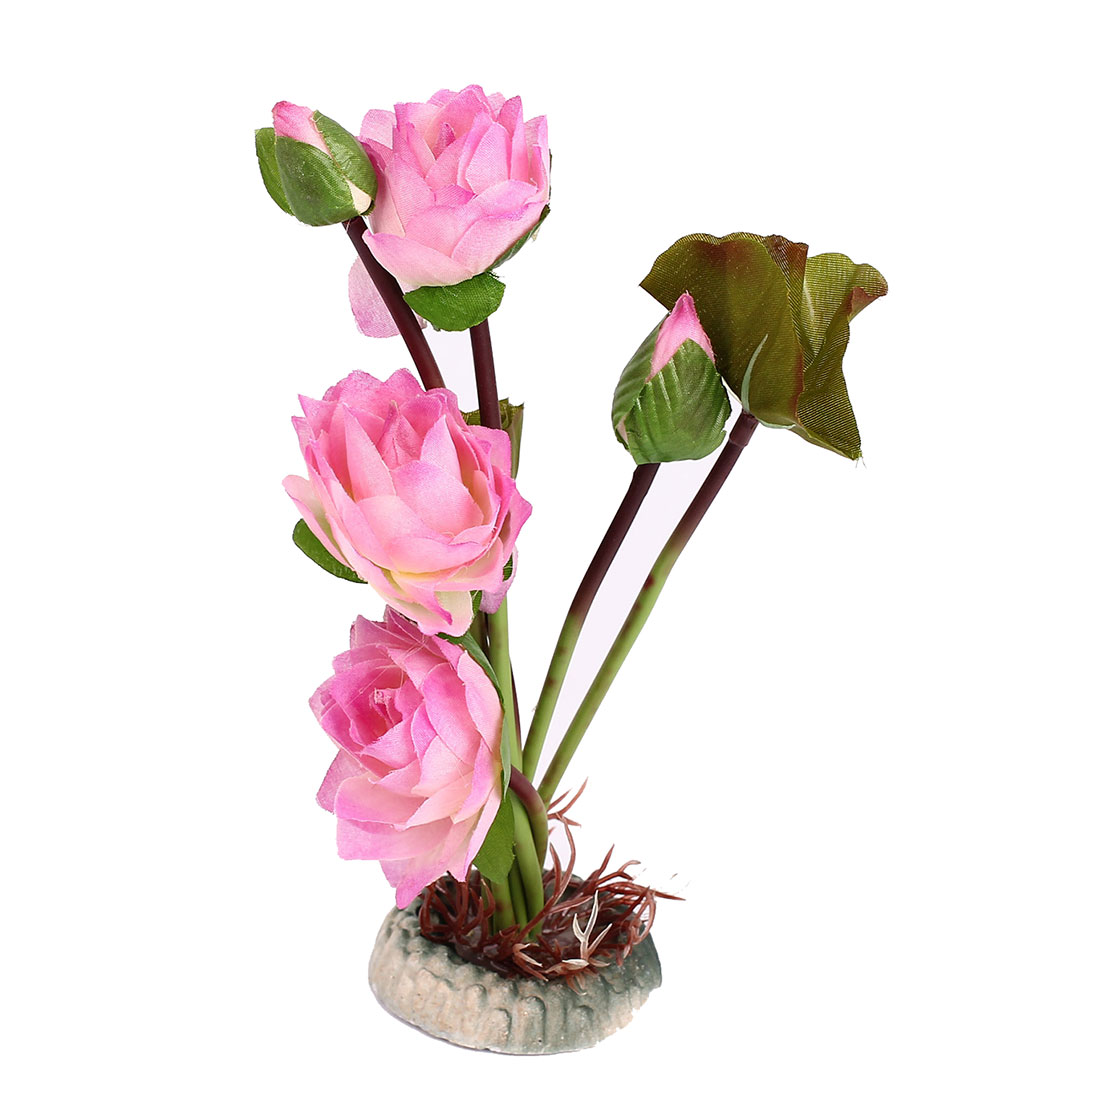 Green Pink Lotus Flower Plastic Water Plant for Aquarium